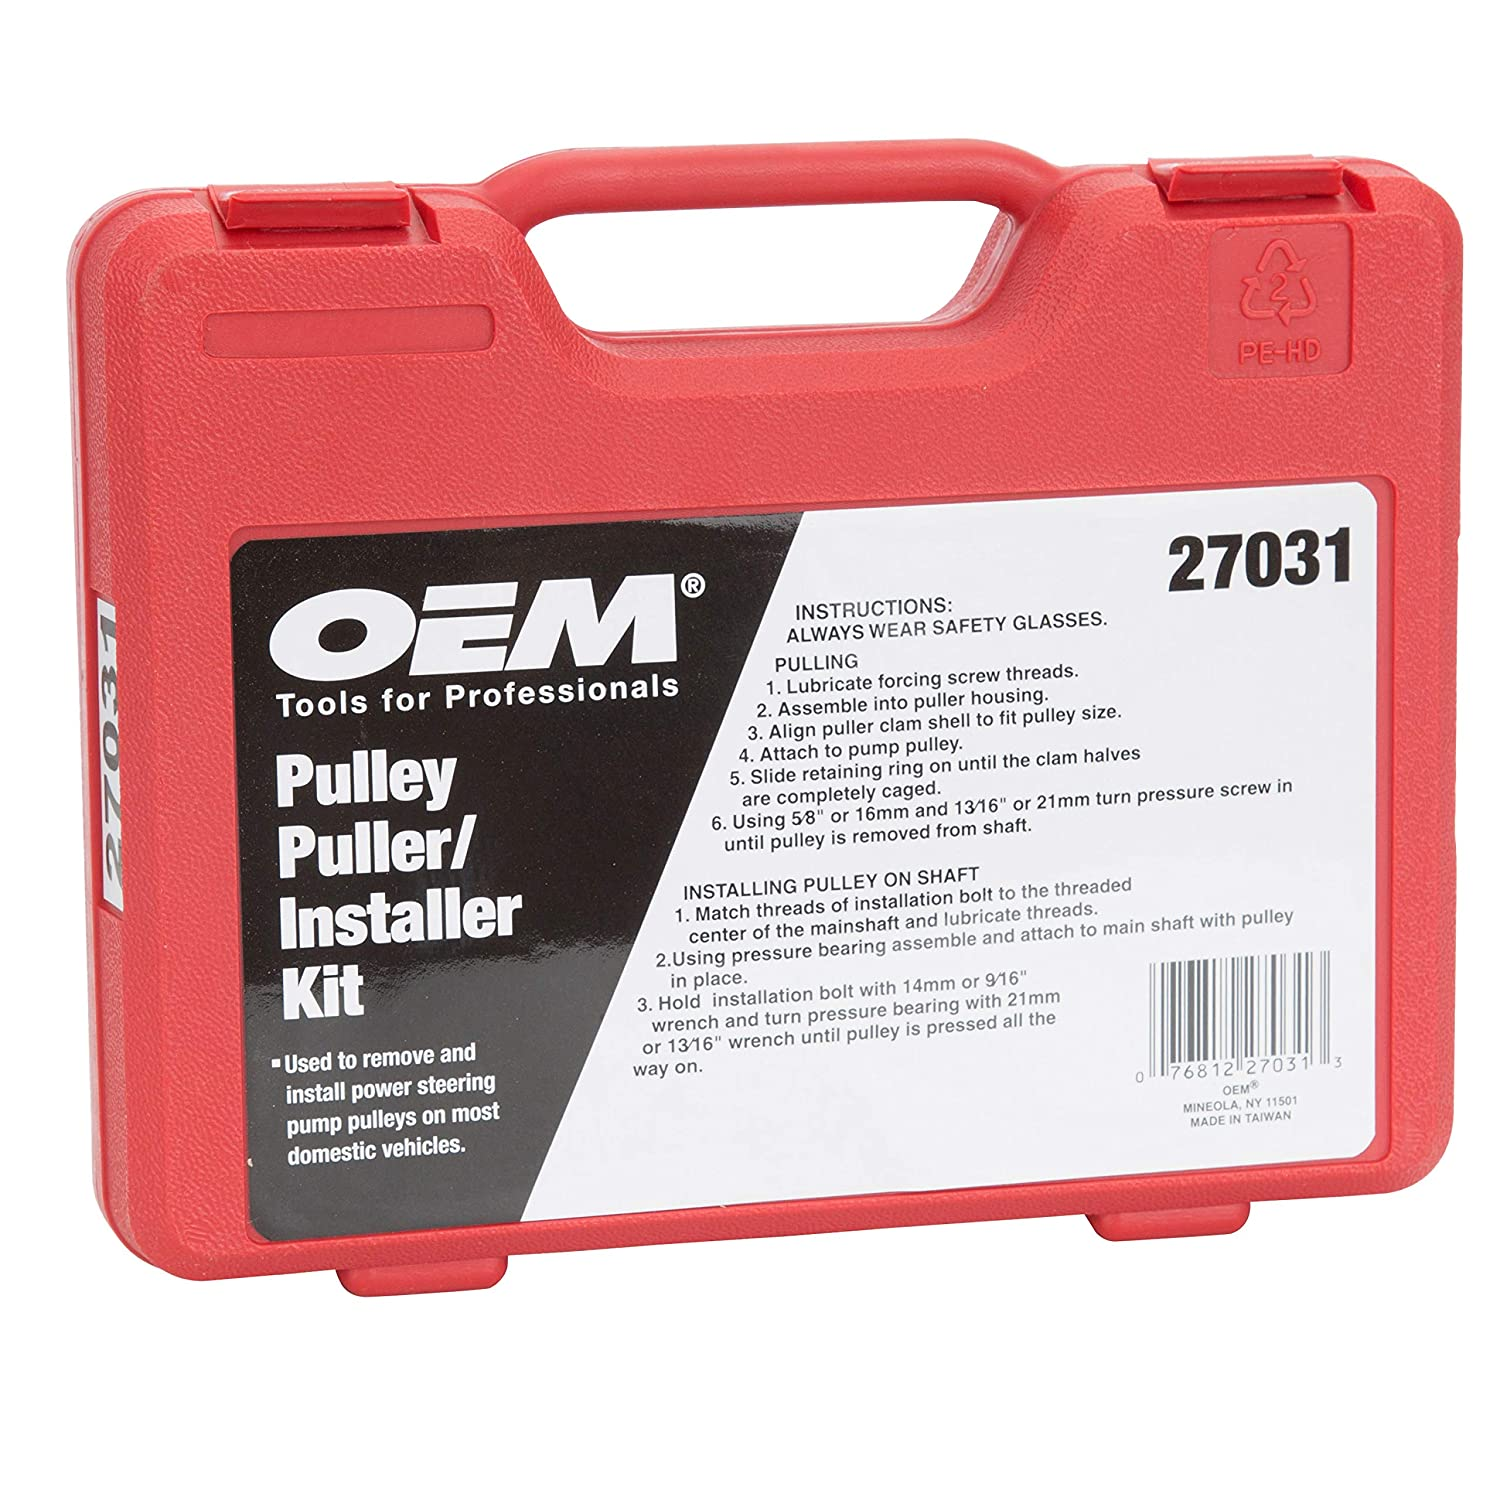 OEMTOOLS 27031 Pulley Puller/Installer